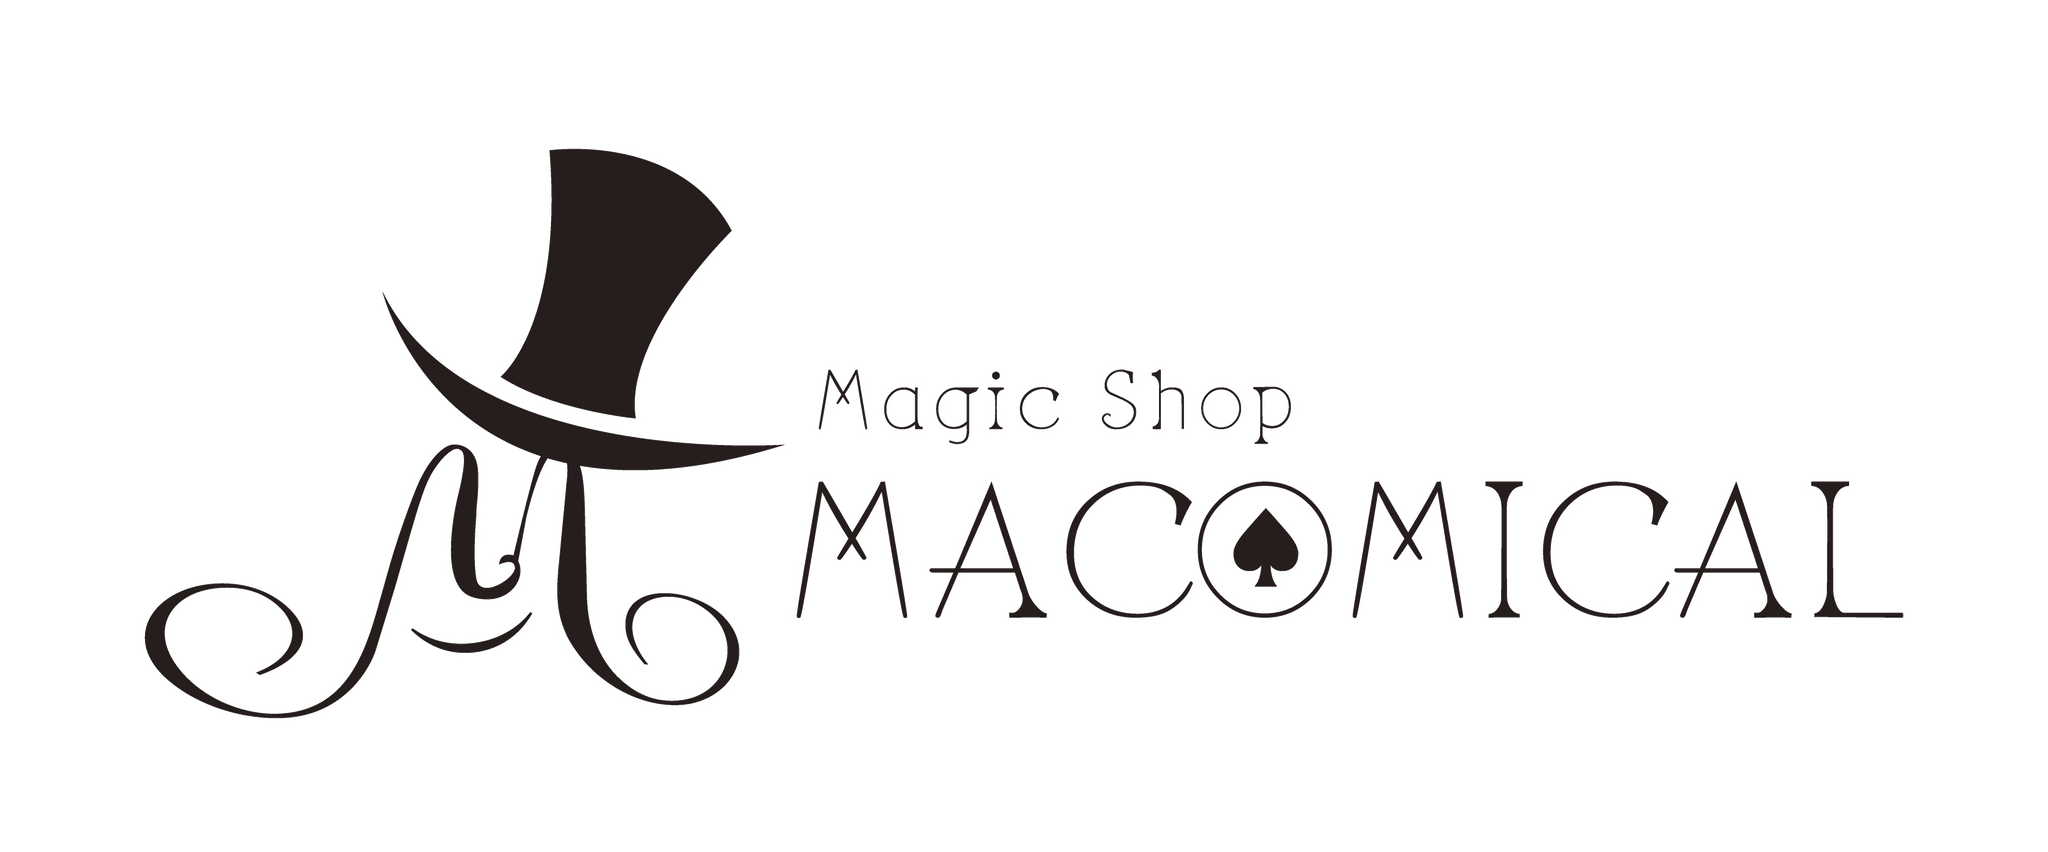 Macomical Shop